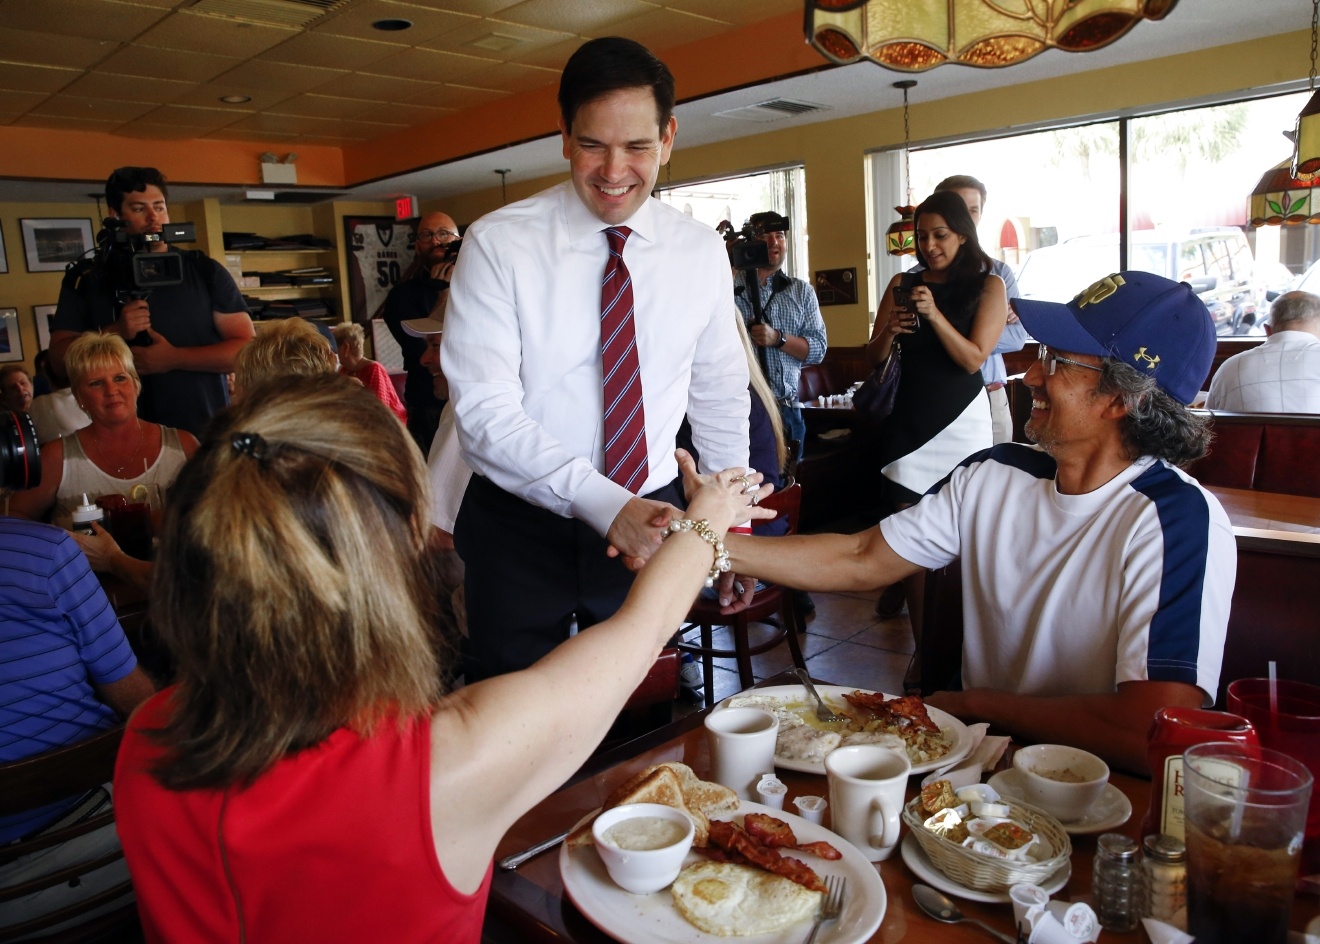 Republican presidential candidate, Sen. Marco Rubio, R-Fla., visits Tiffany's Family Restaurant in Palm Harbor, Fla., Saturday, March 12, 2016. (AP Photo/Paul Sancya)